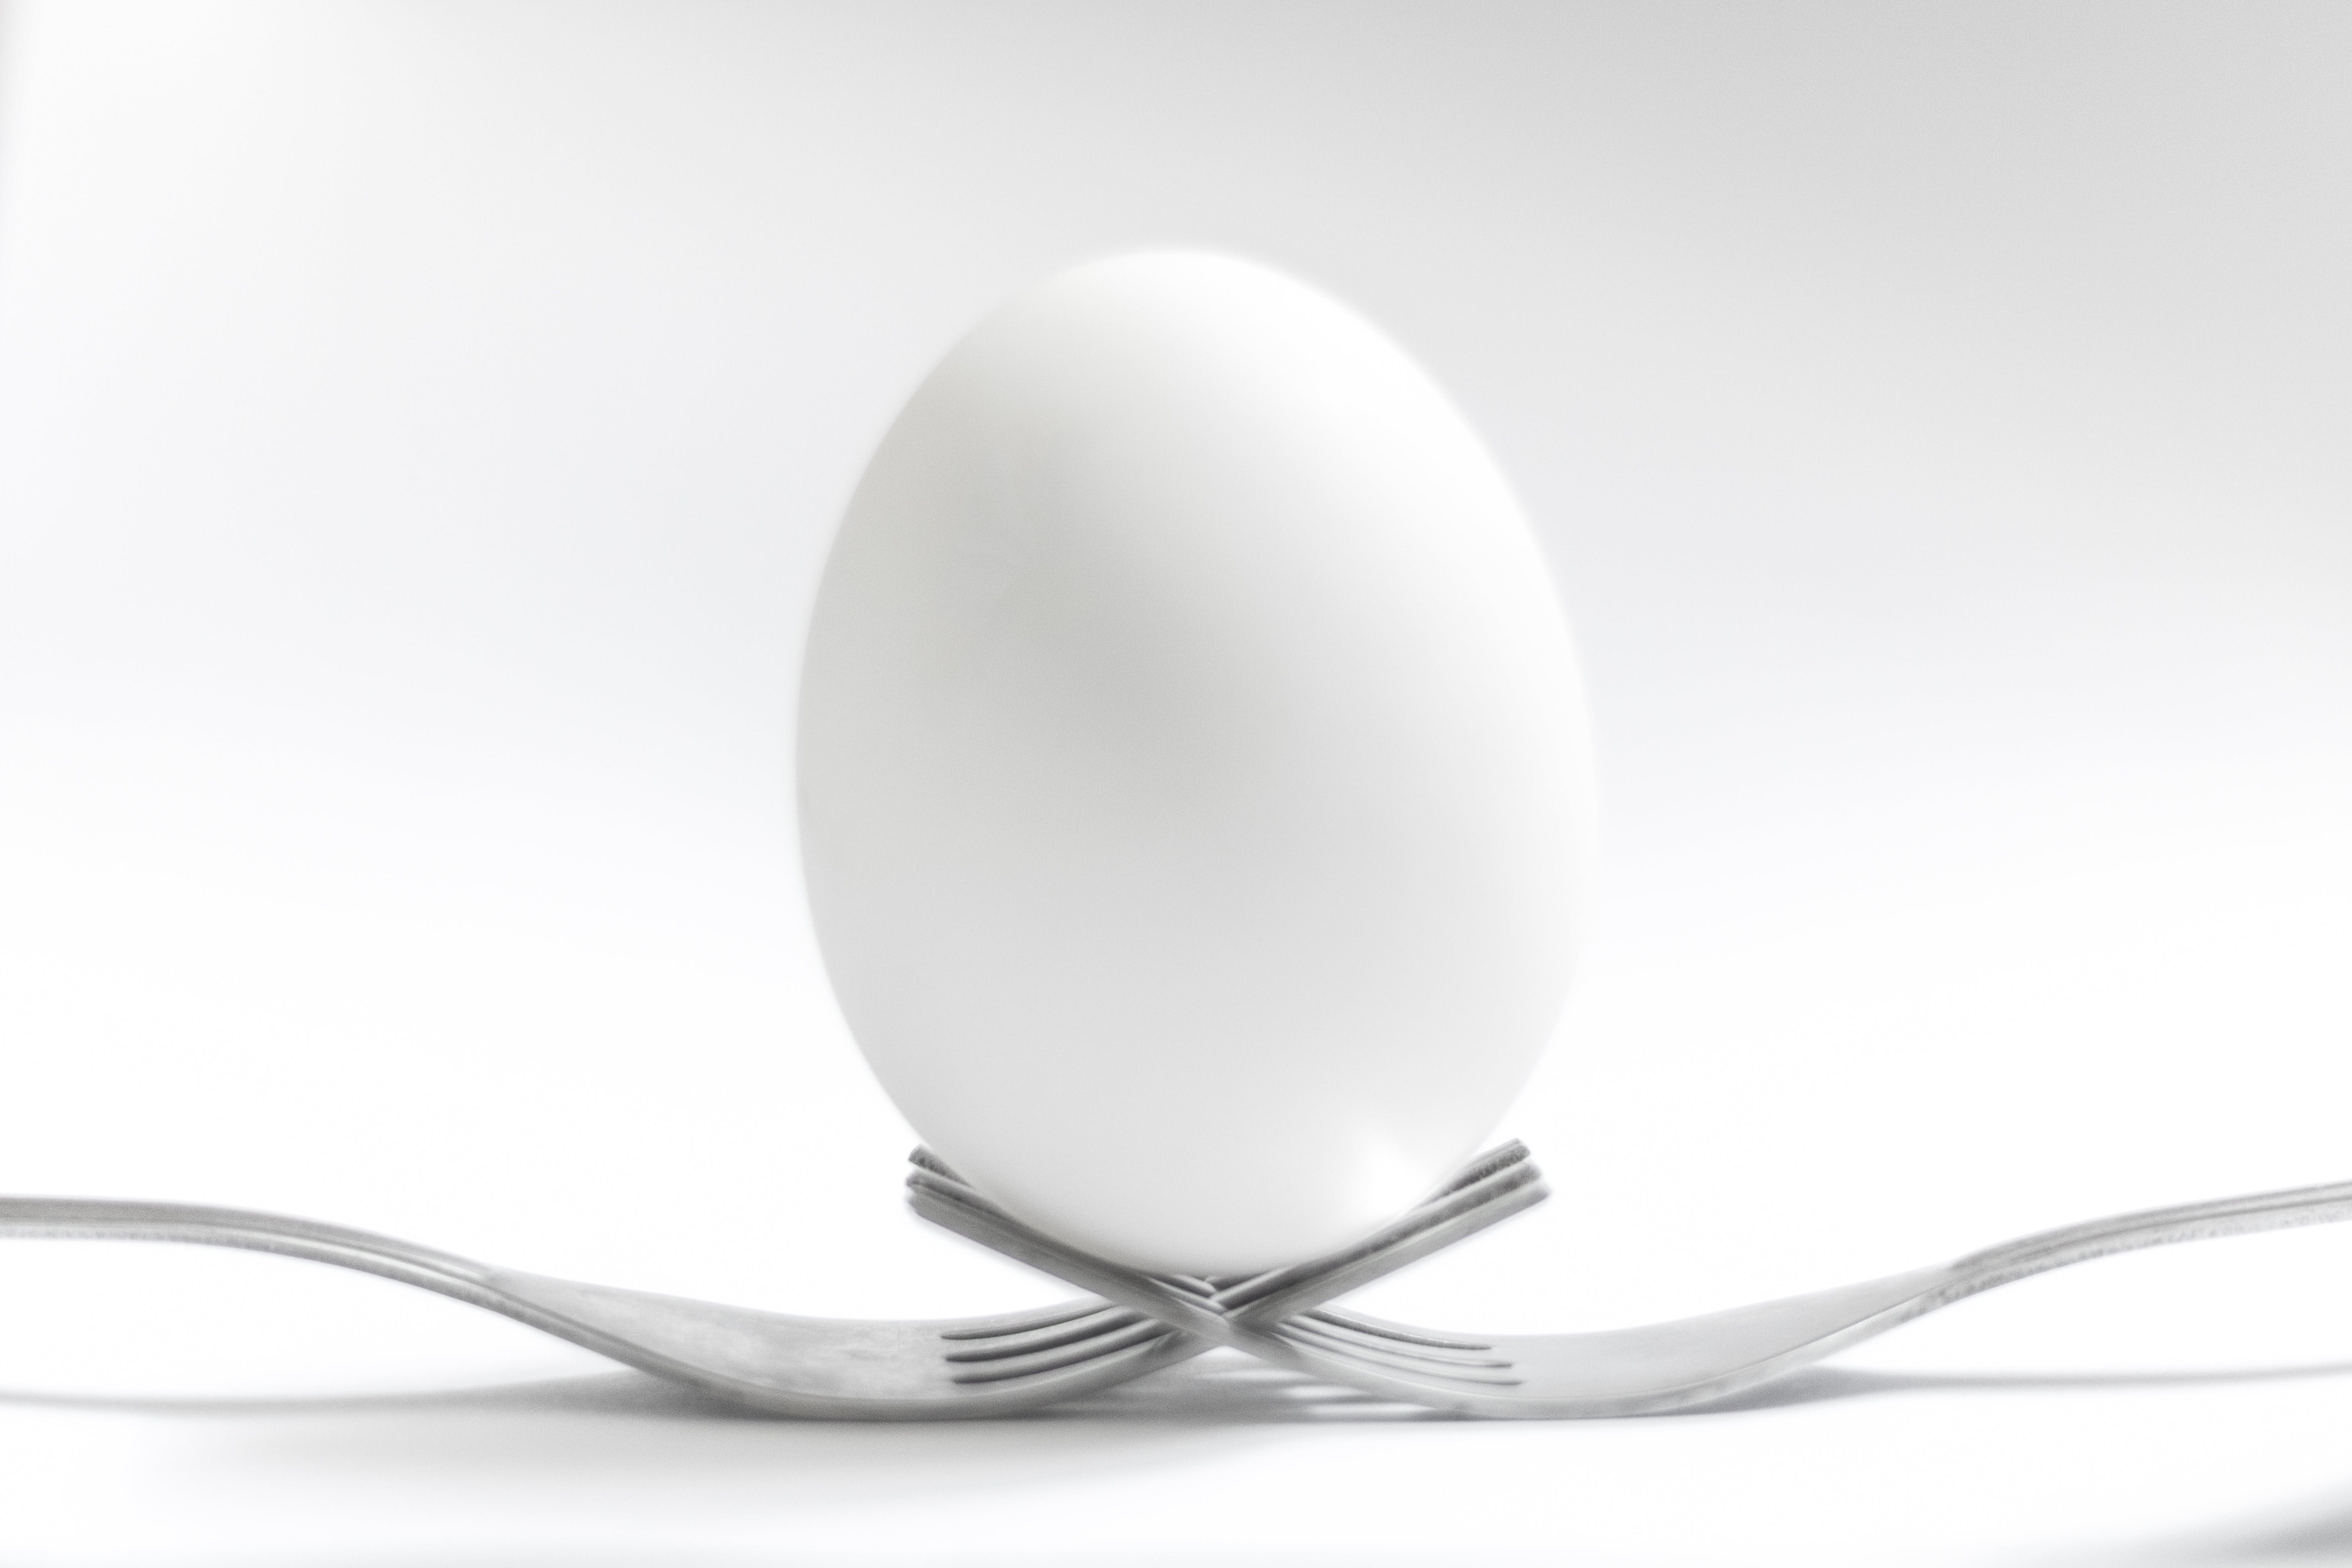 Free stock photo of balancing eggs, black and white, bnw, close-up